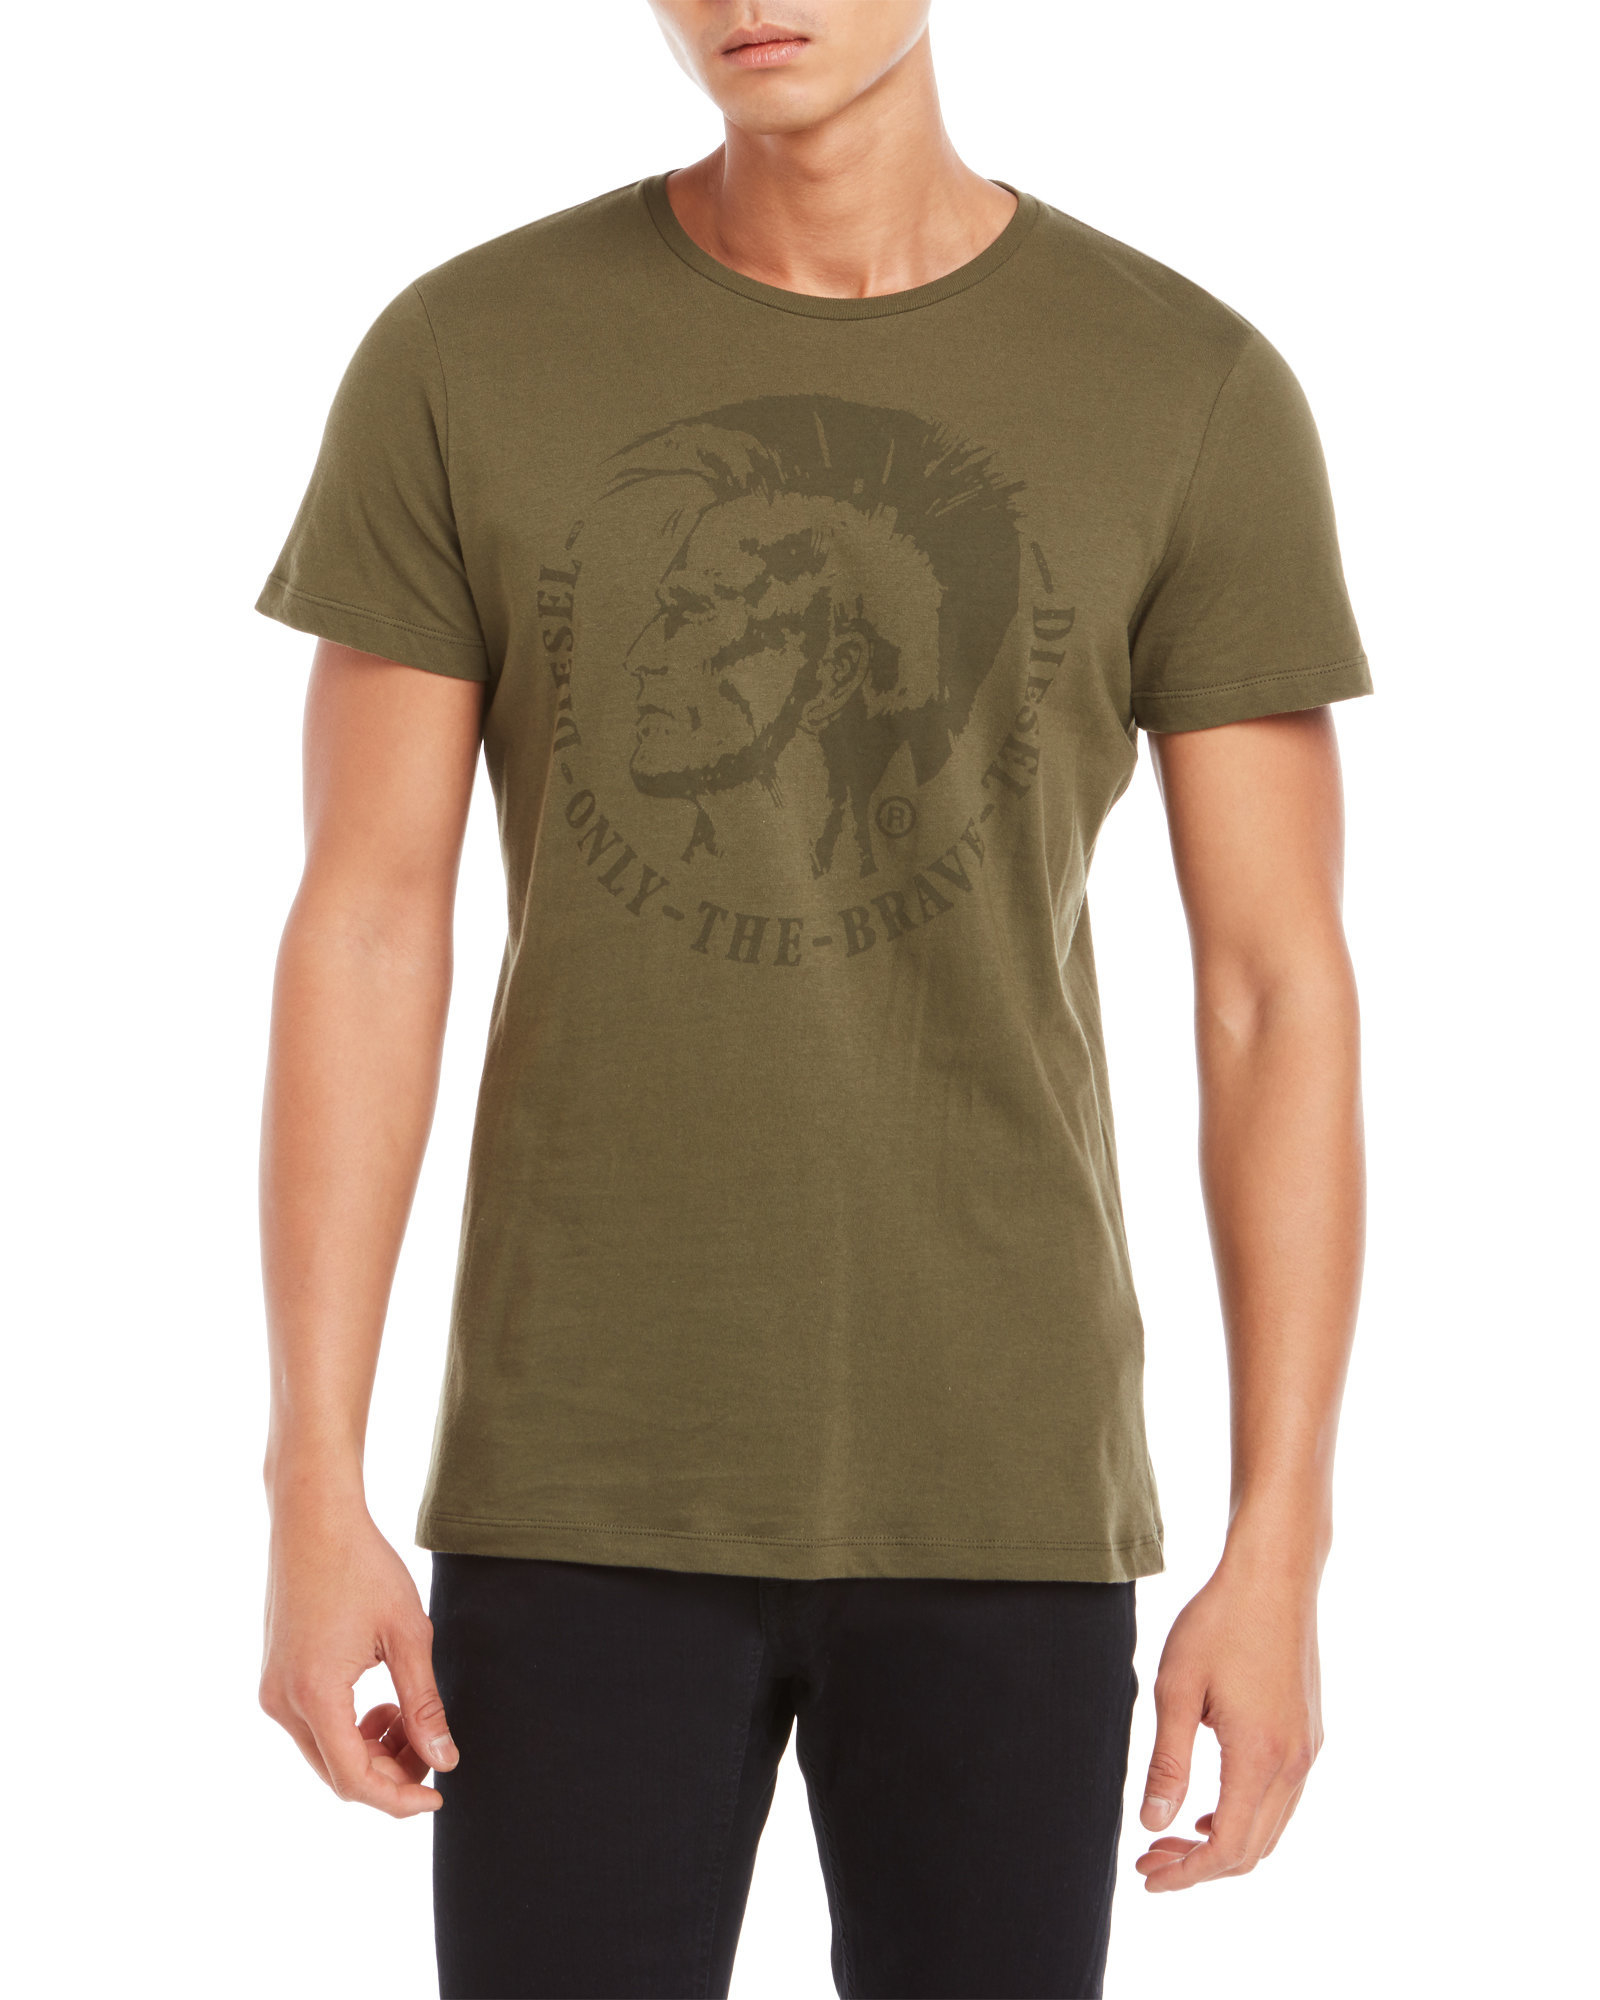 Diesel only the brave tee in green for men lyst for Century 21 dress shirts